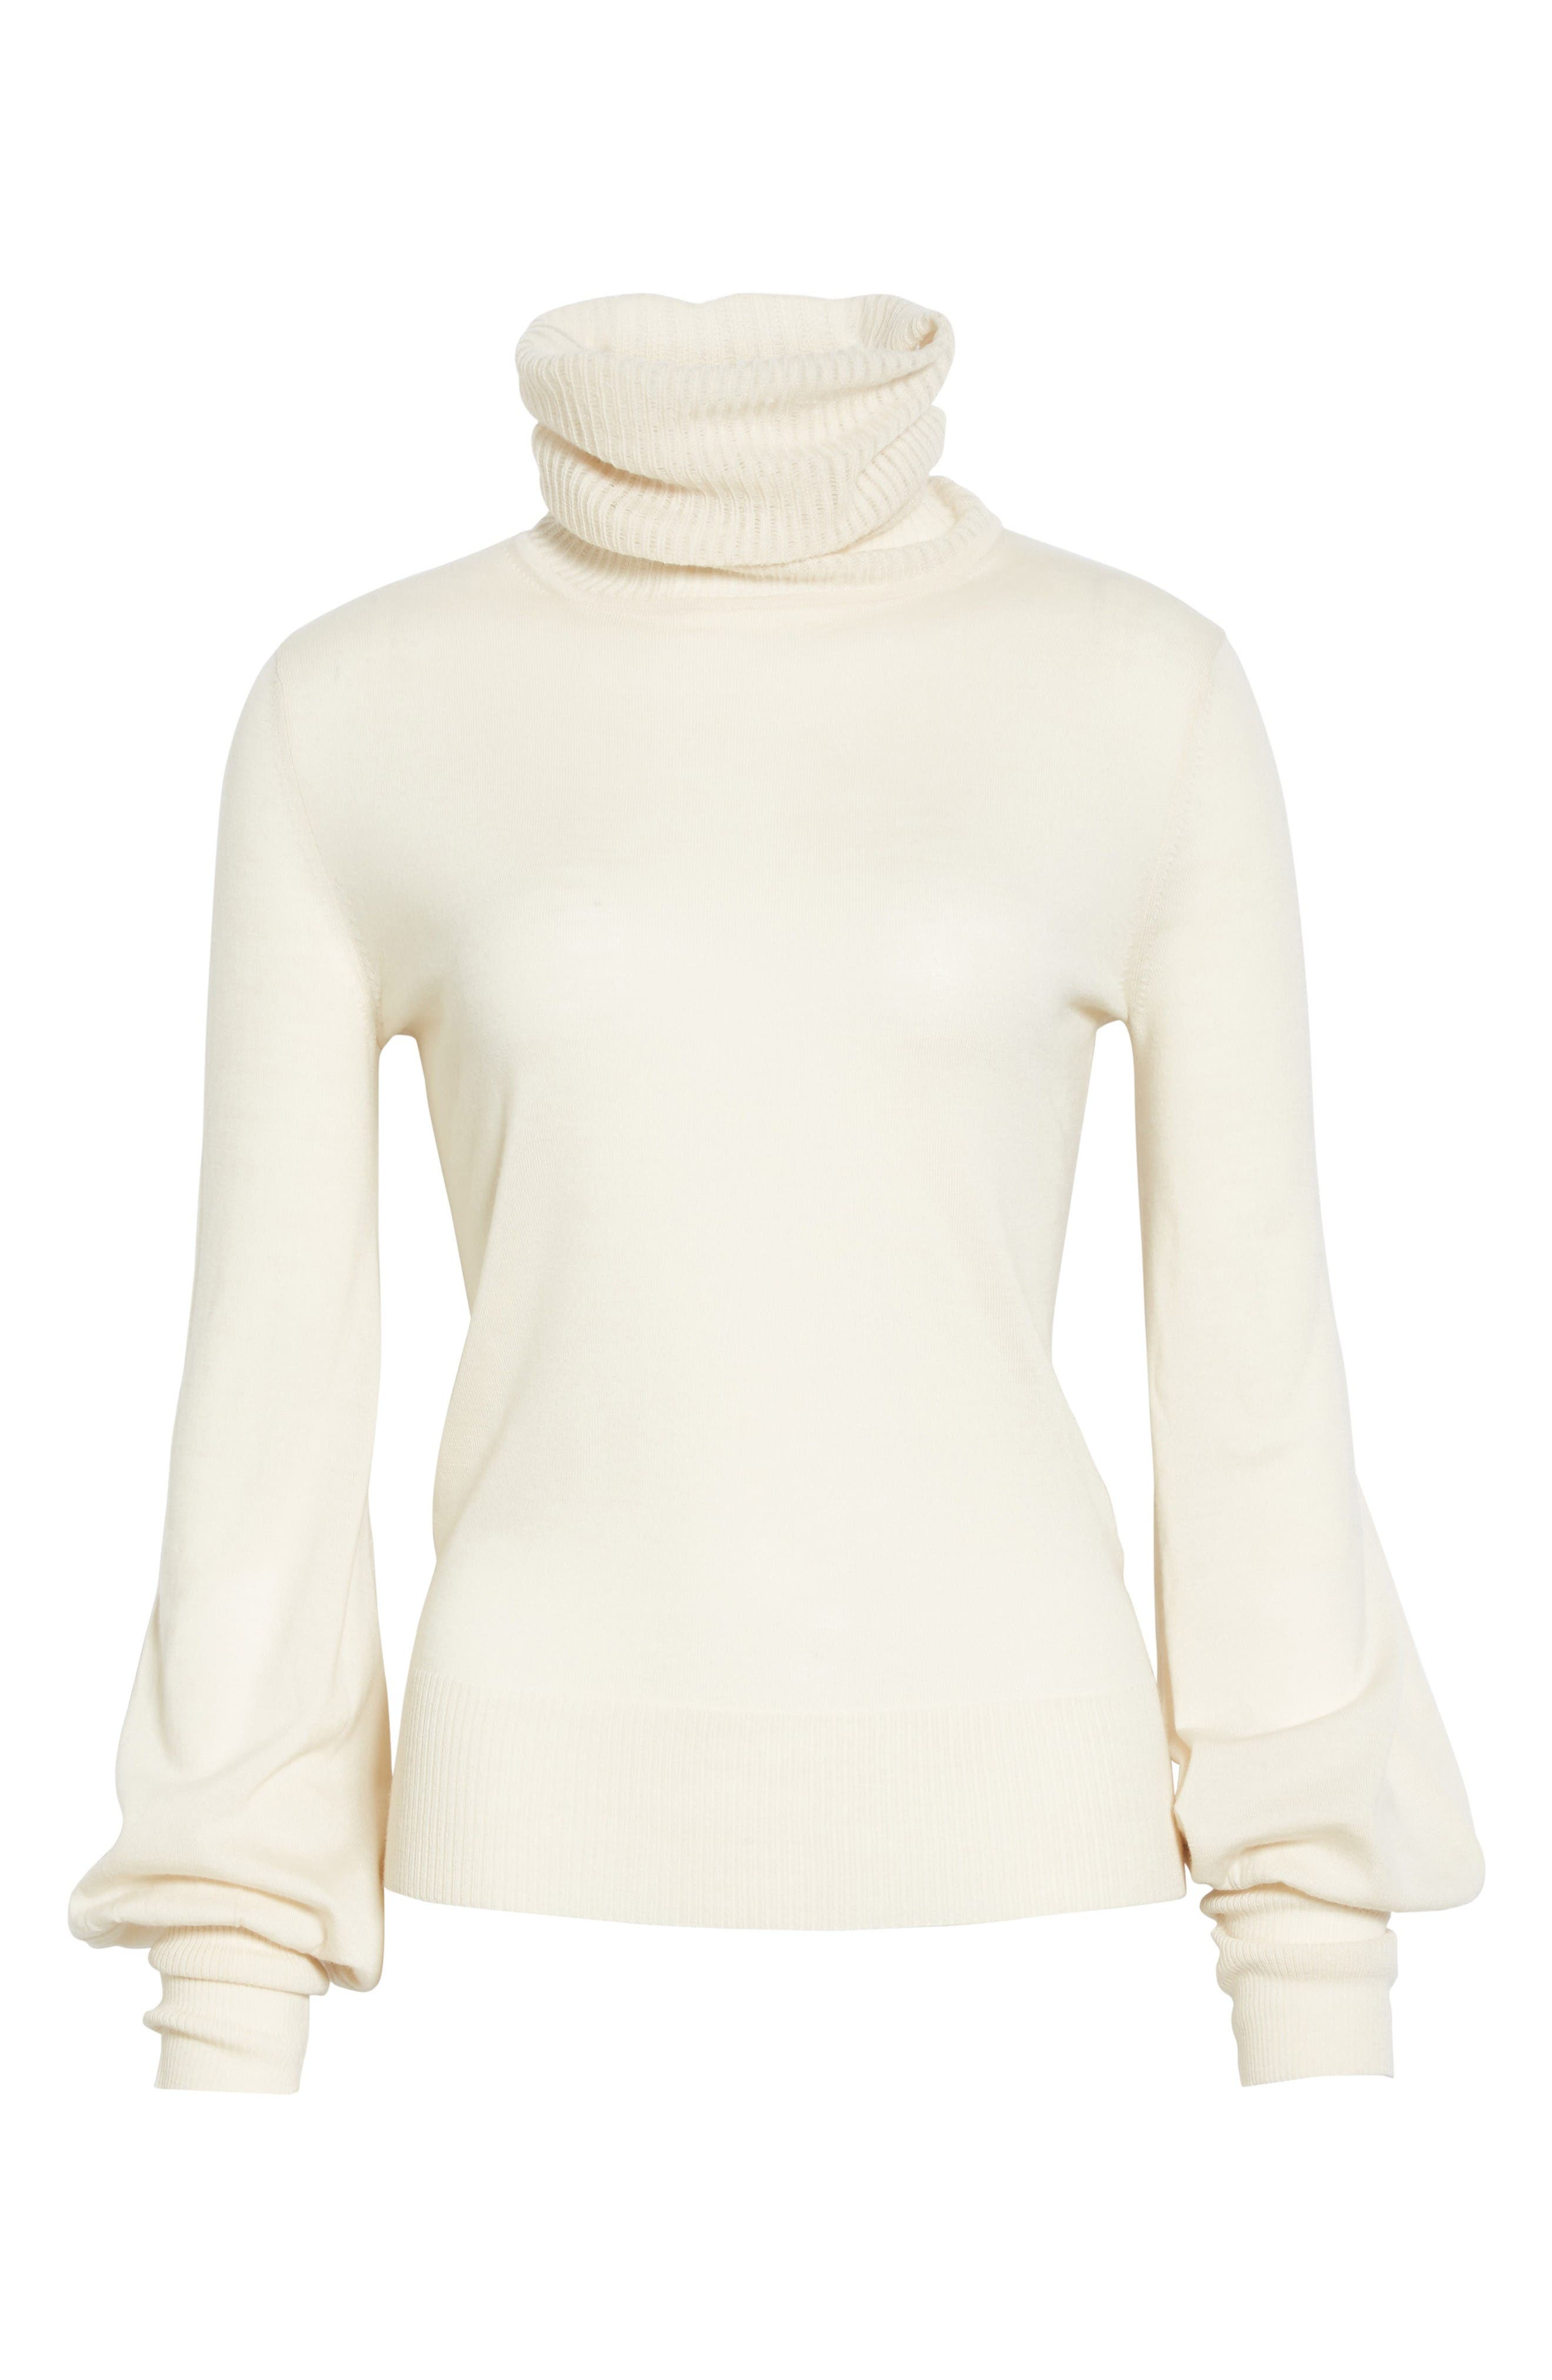 Wool Turtleneck Sweater,                             Alternate thumbnail 4, color,                             Off White